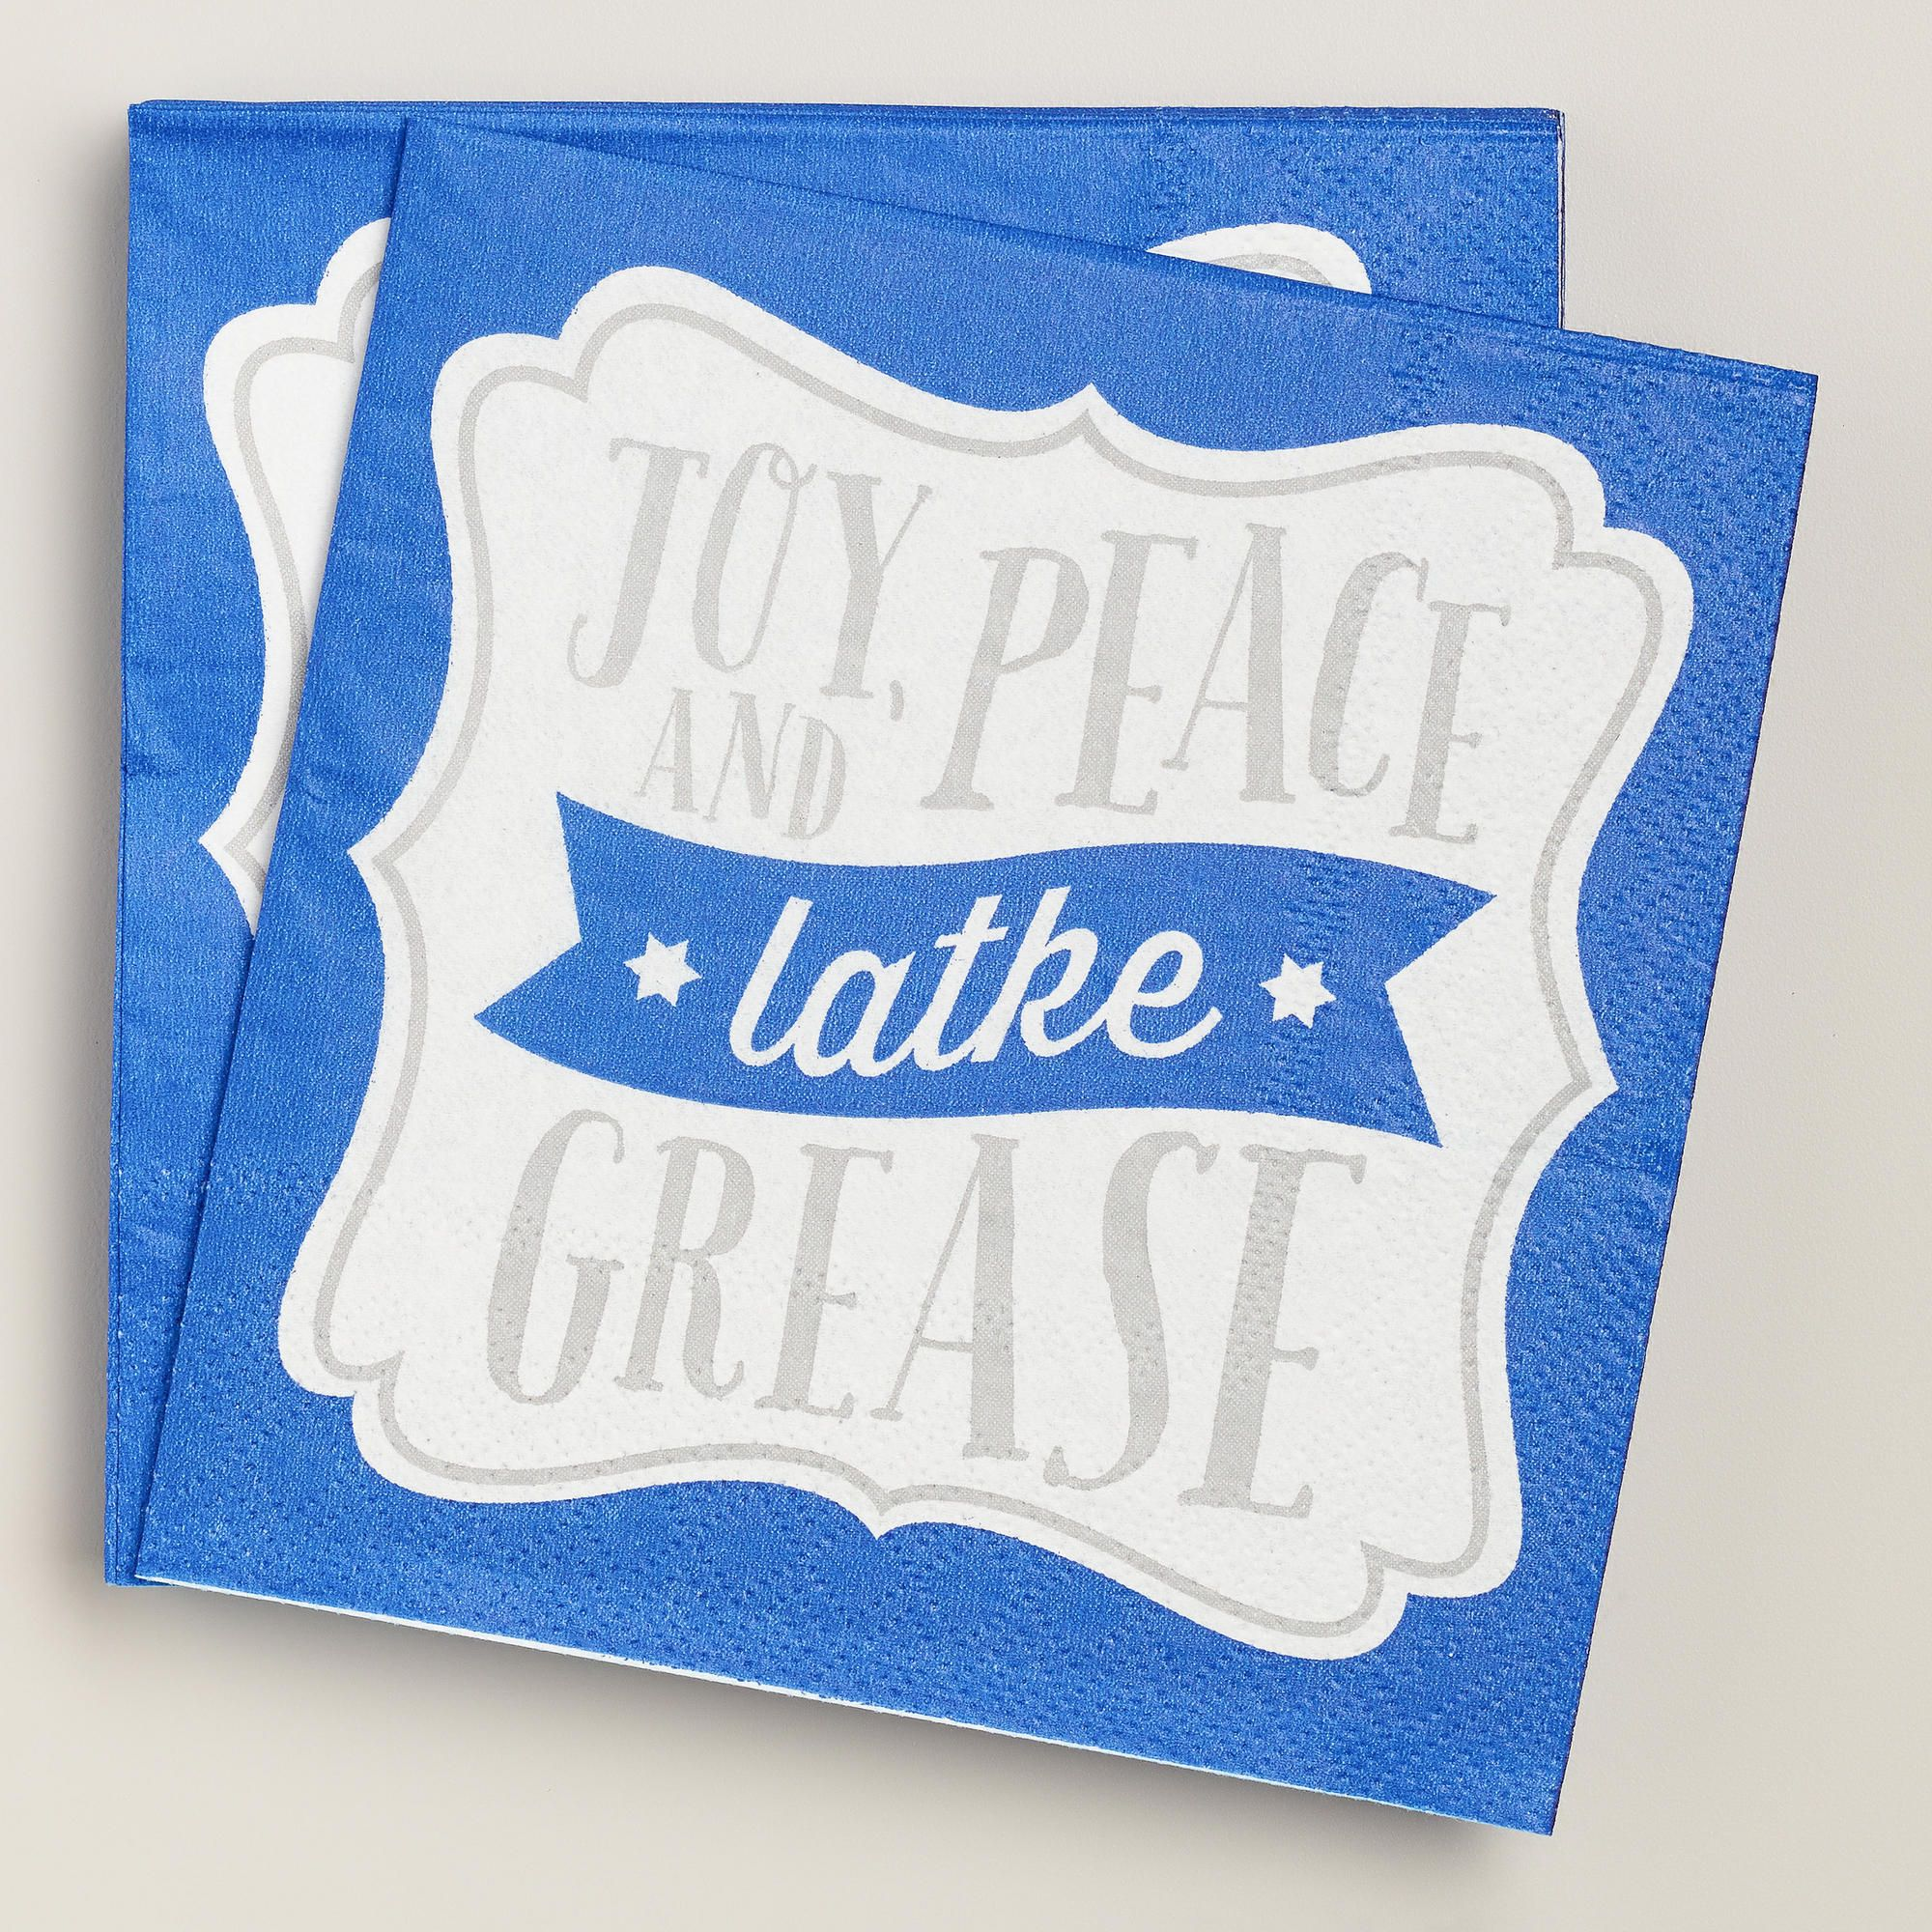 Joy peace and latke grease cocktail napkins 20 count world market joy peace and latke grease cocktail napkins 20 count world market m4hsunfo